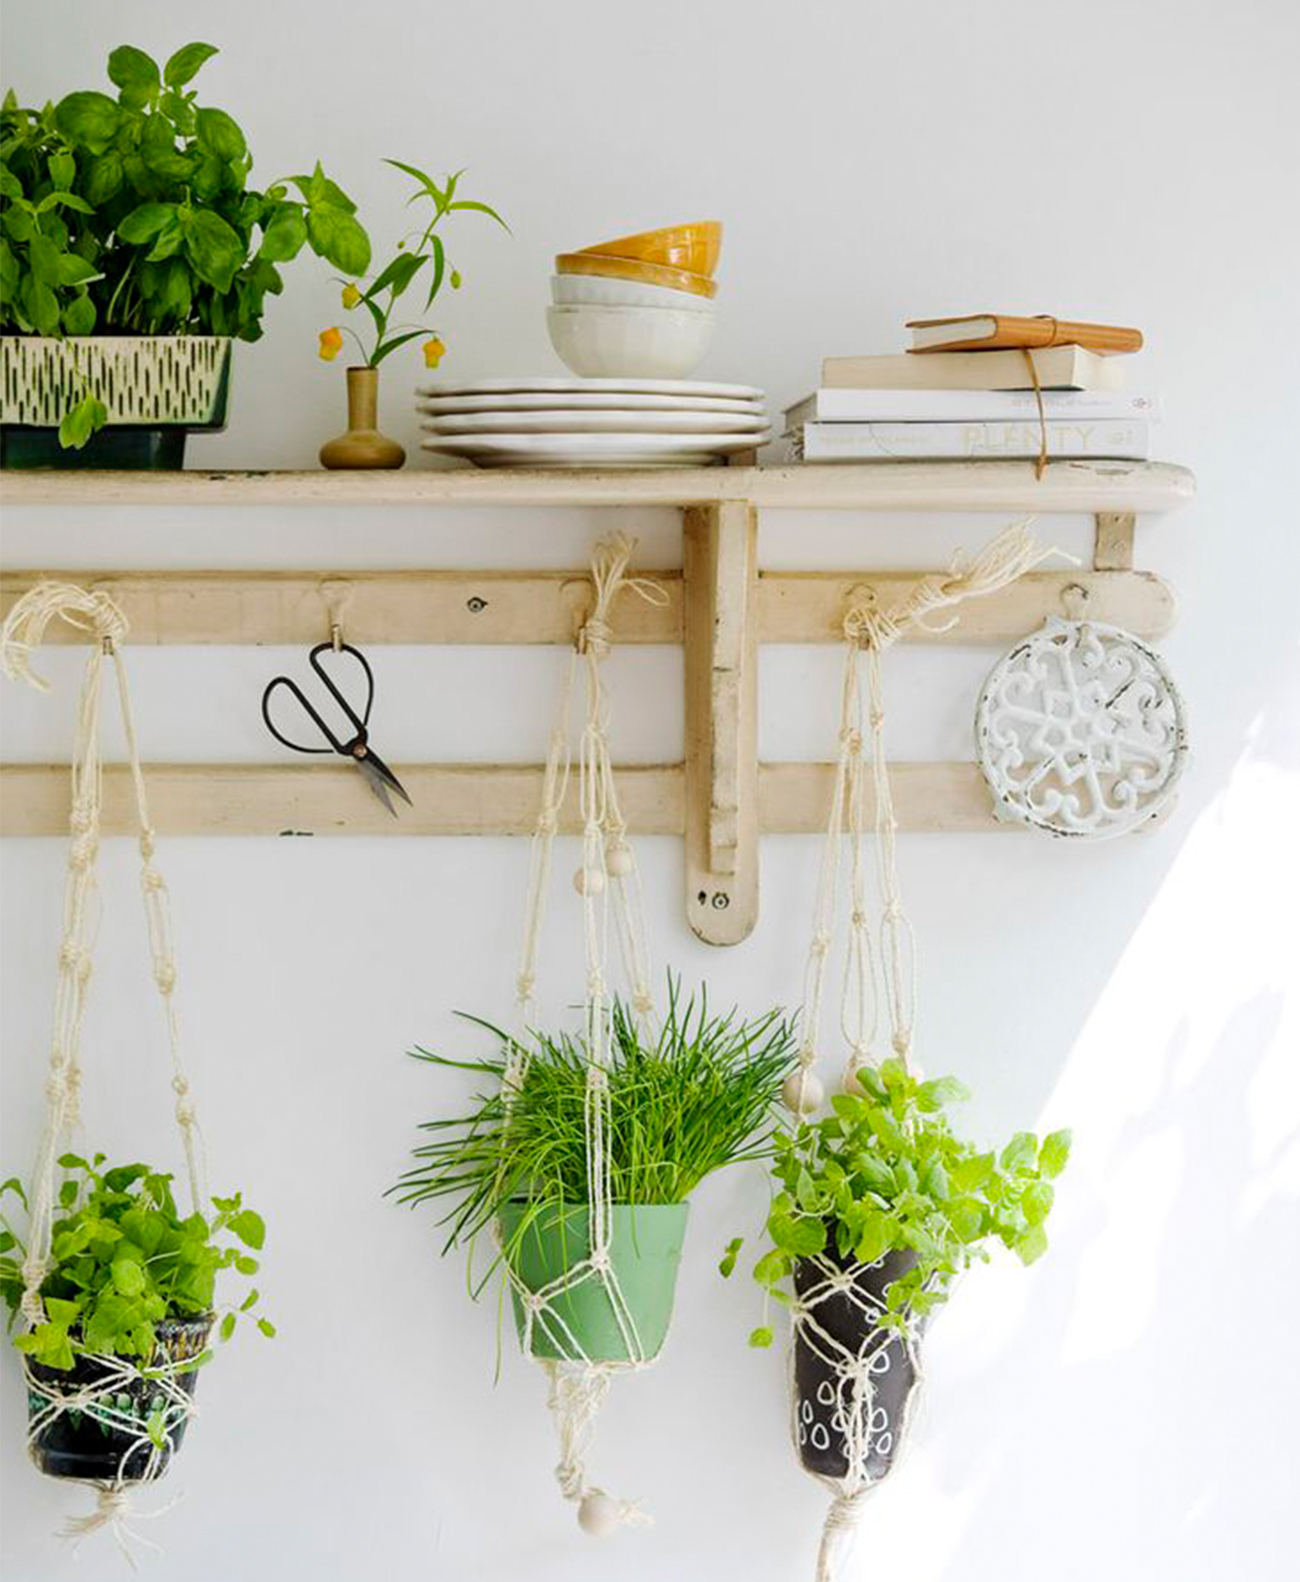 Hanging pots in home